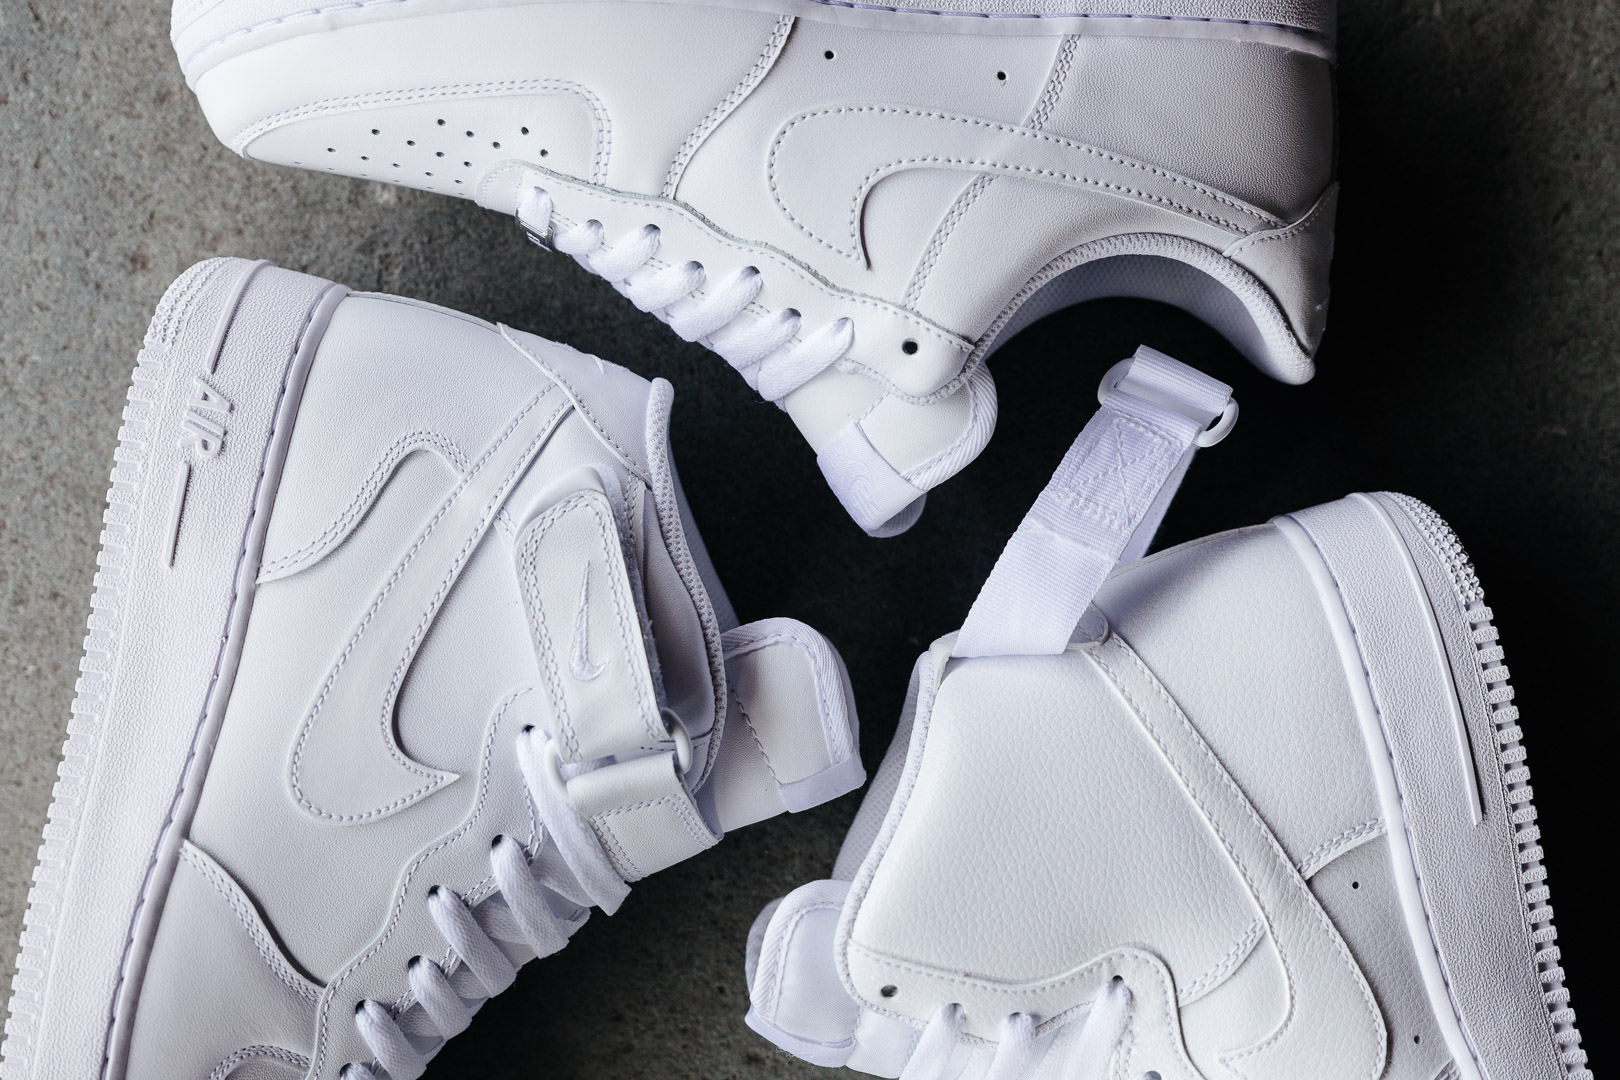 SUMMER-SALE-2156-INS-SoleHeaven-NIKE-AIR-FORCE-1-TRIPLE-WHITE-PACK.jpg